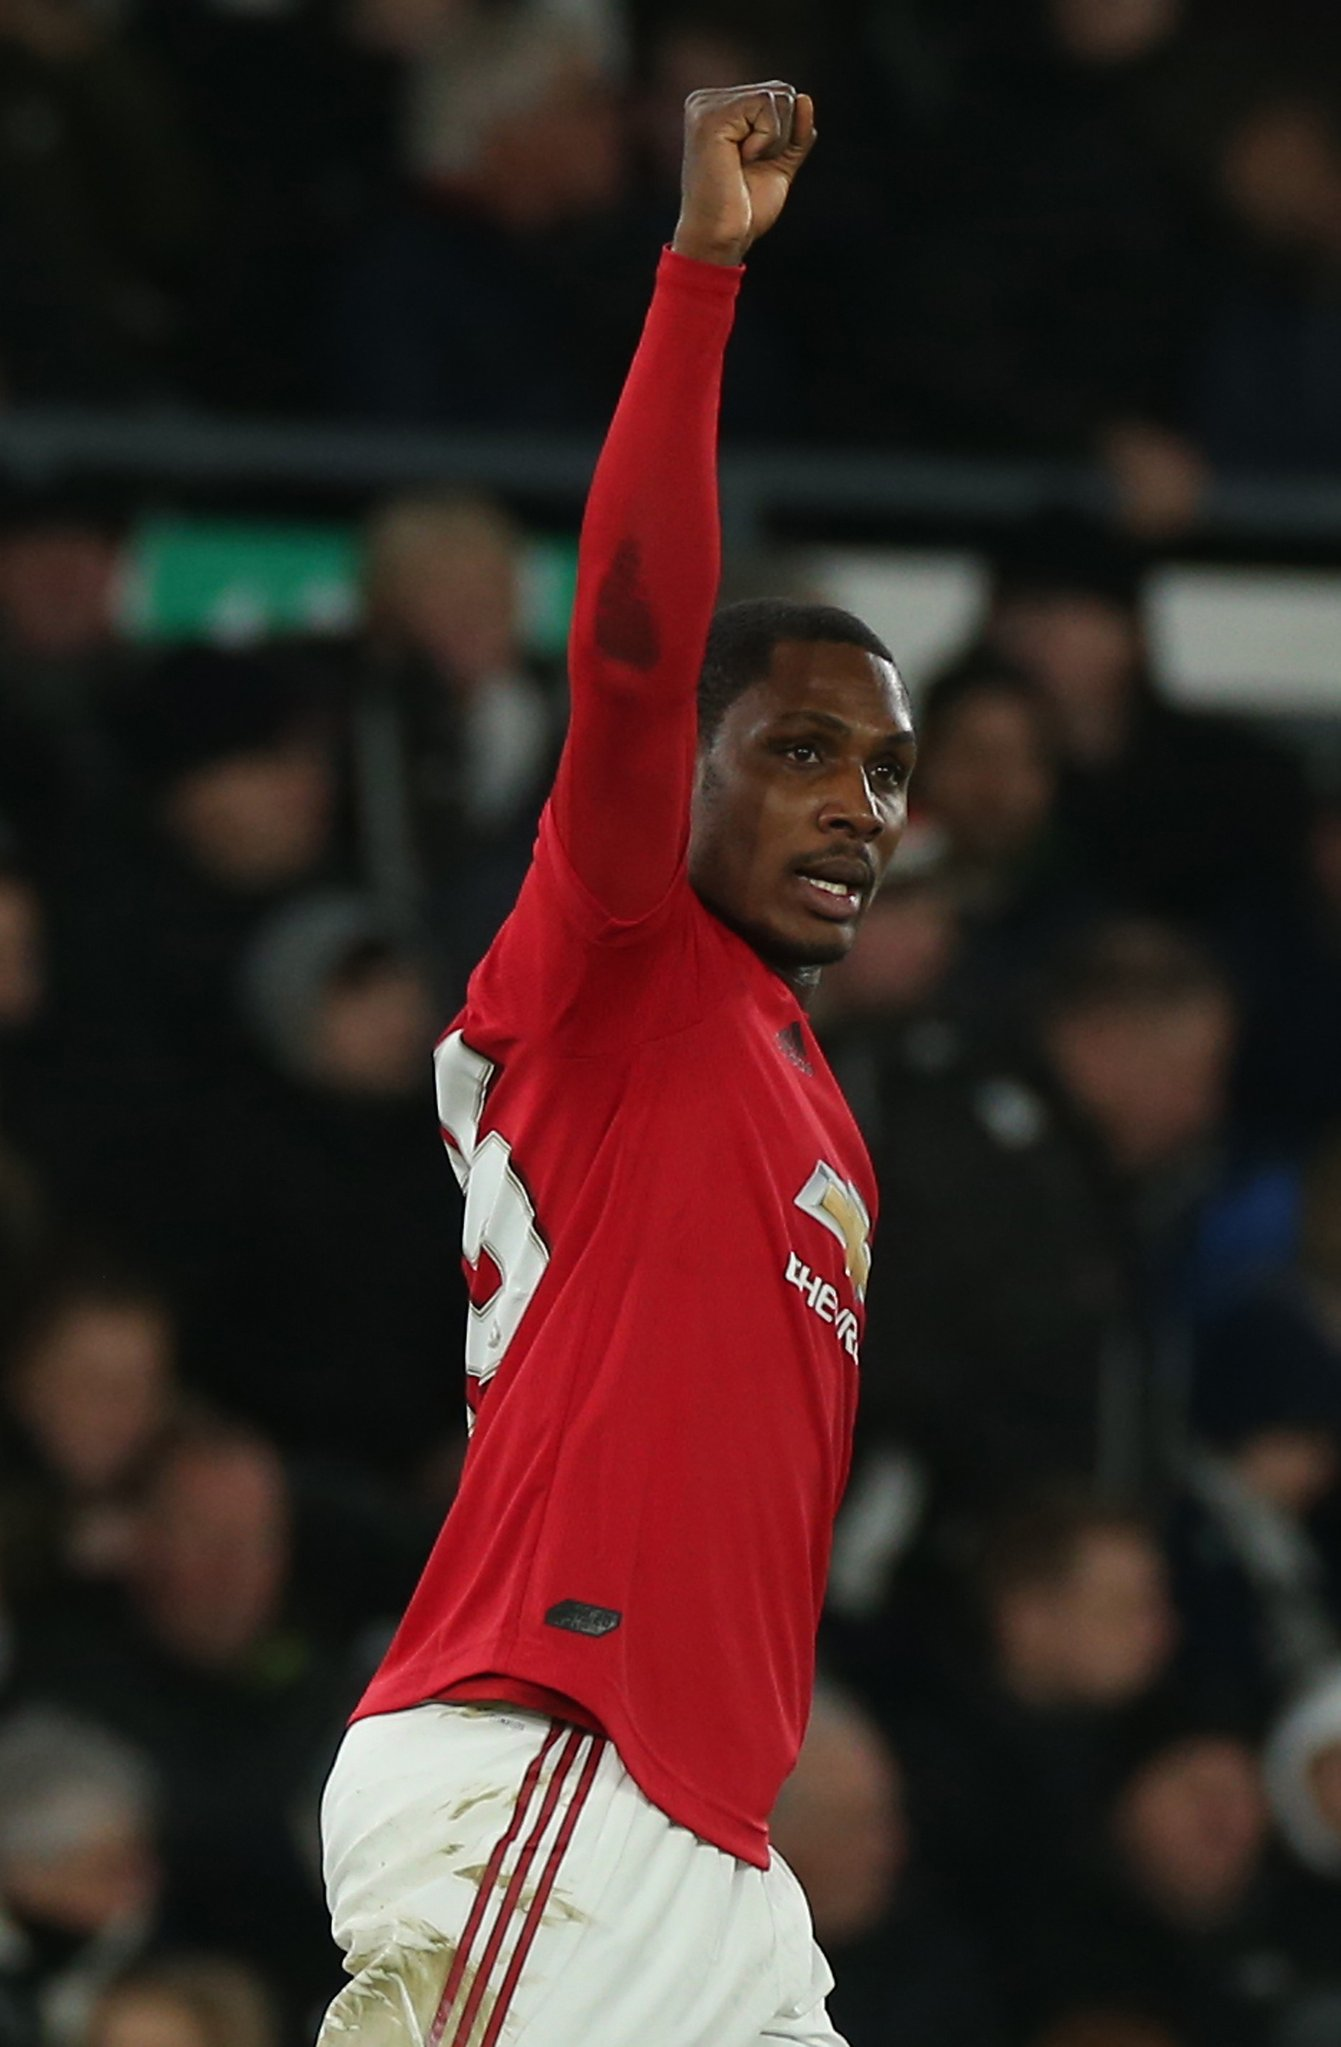 Ighalo Voted Man United's Man Of The Match In FA Cup Win Vs Derby County